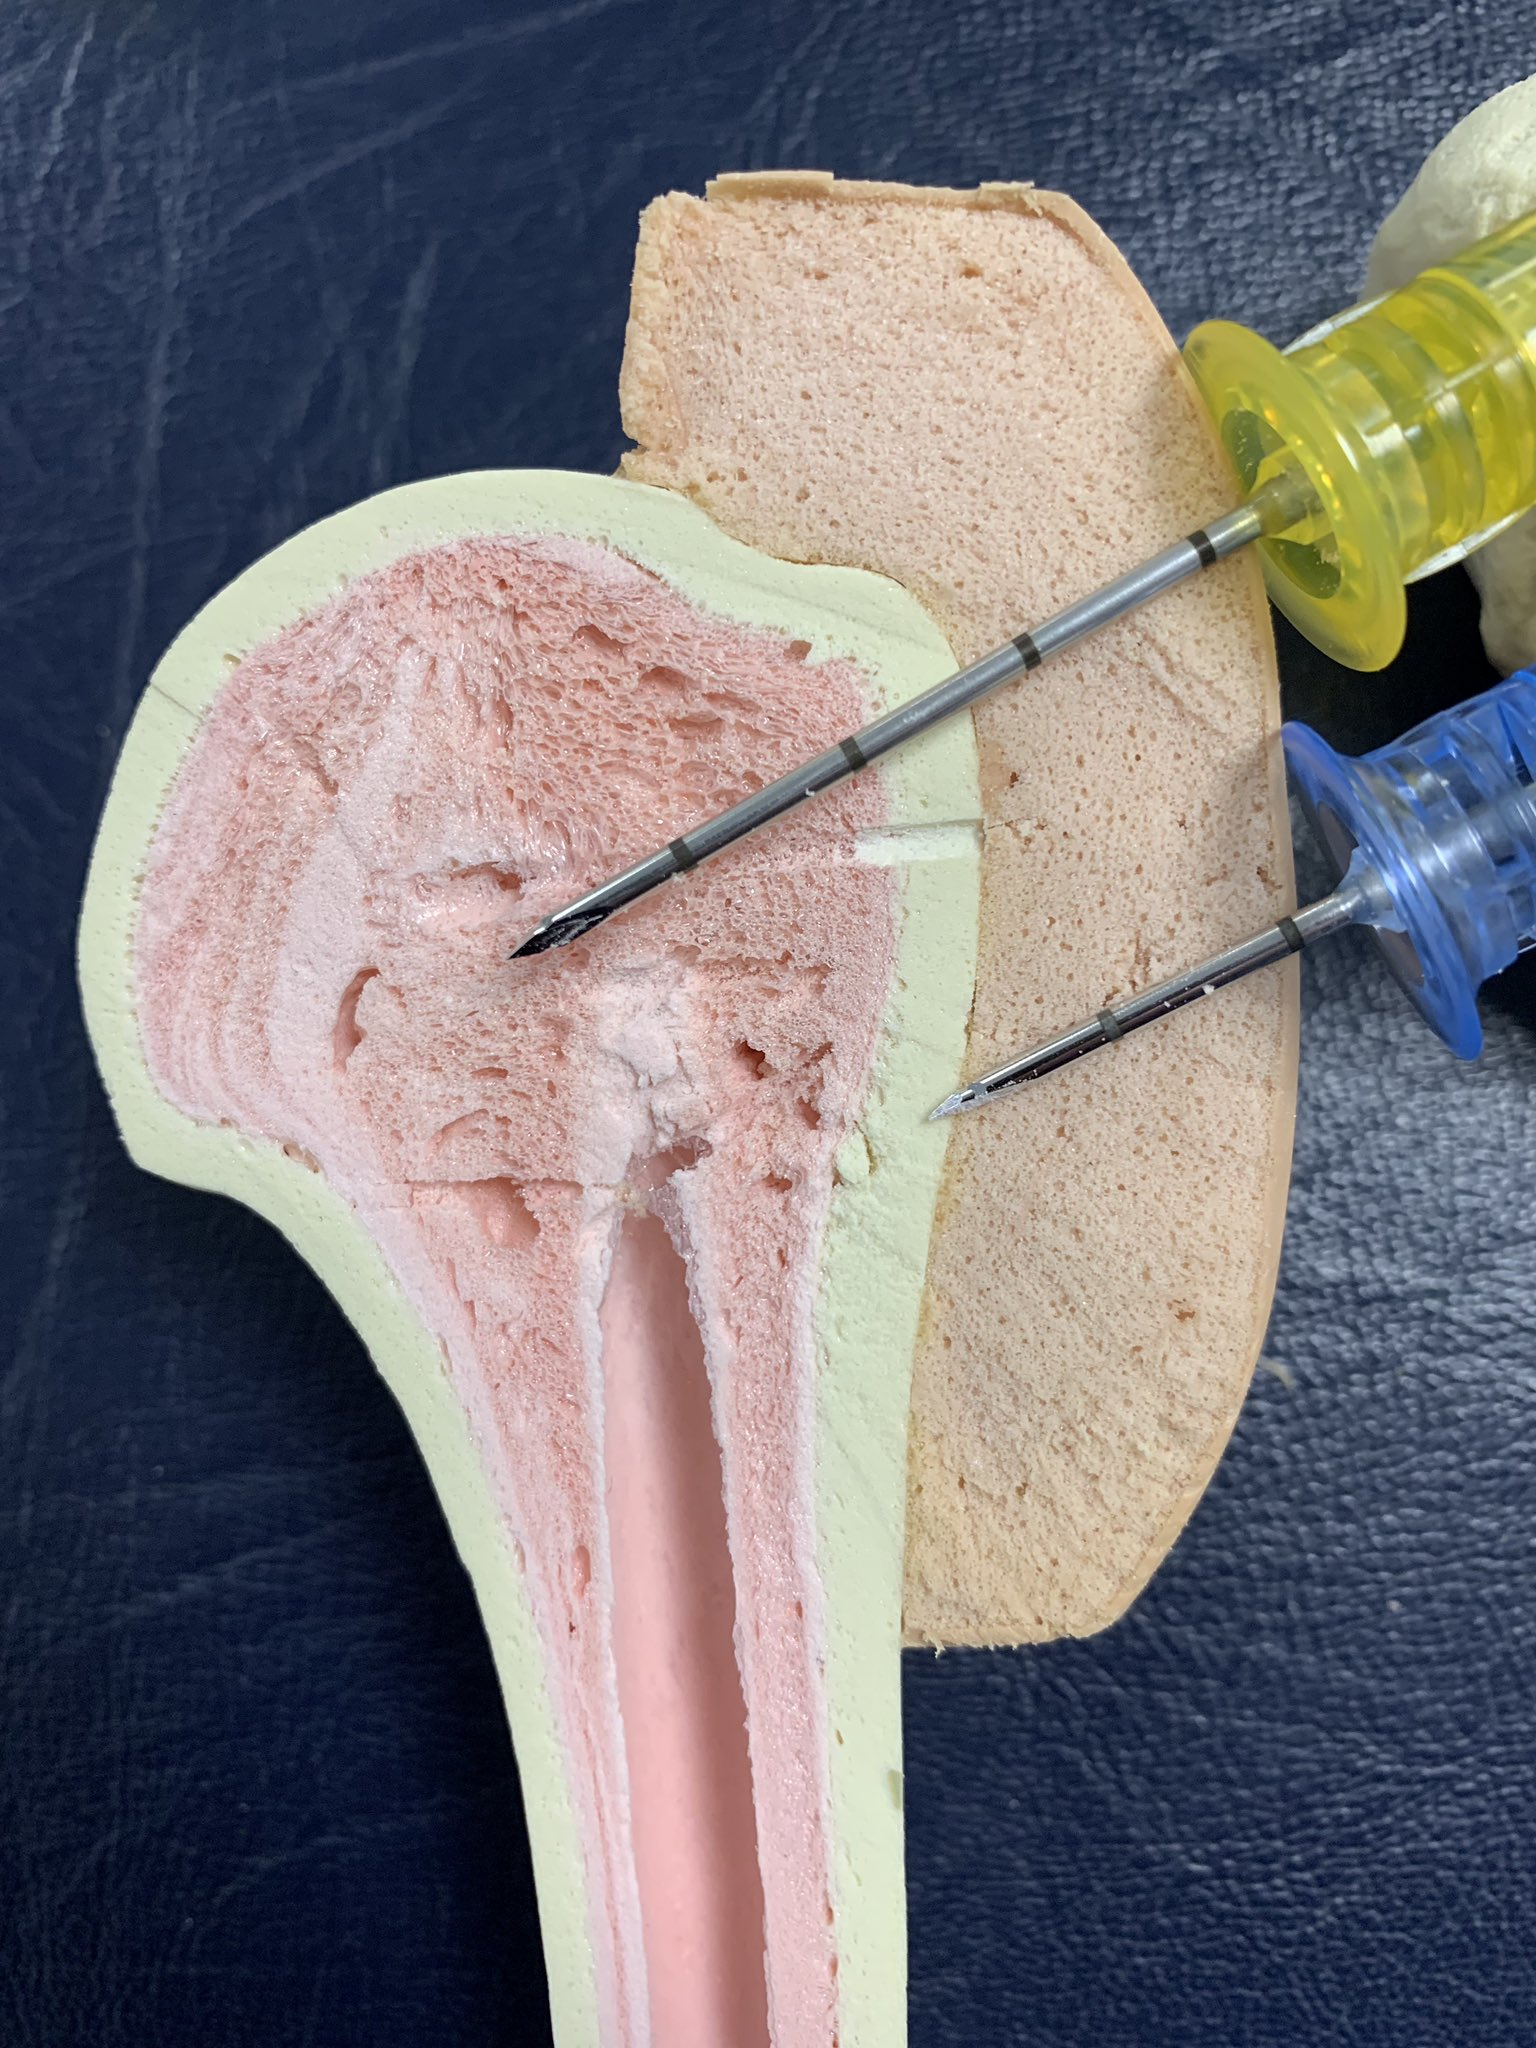 That's why you use the yellow needle  in  Proximal Humerus https://t.co/BMnnxzA7wY